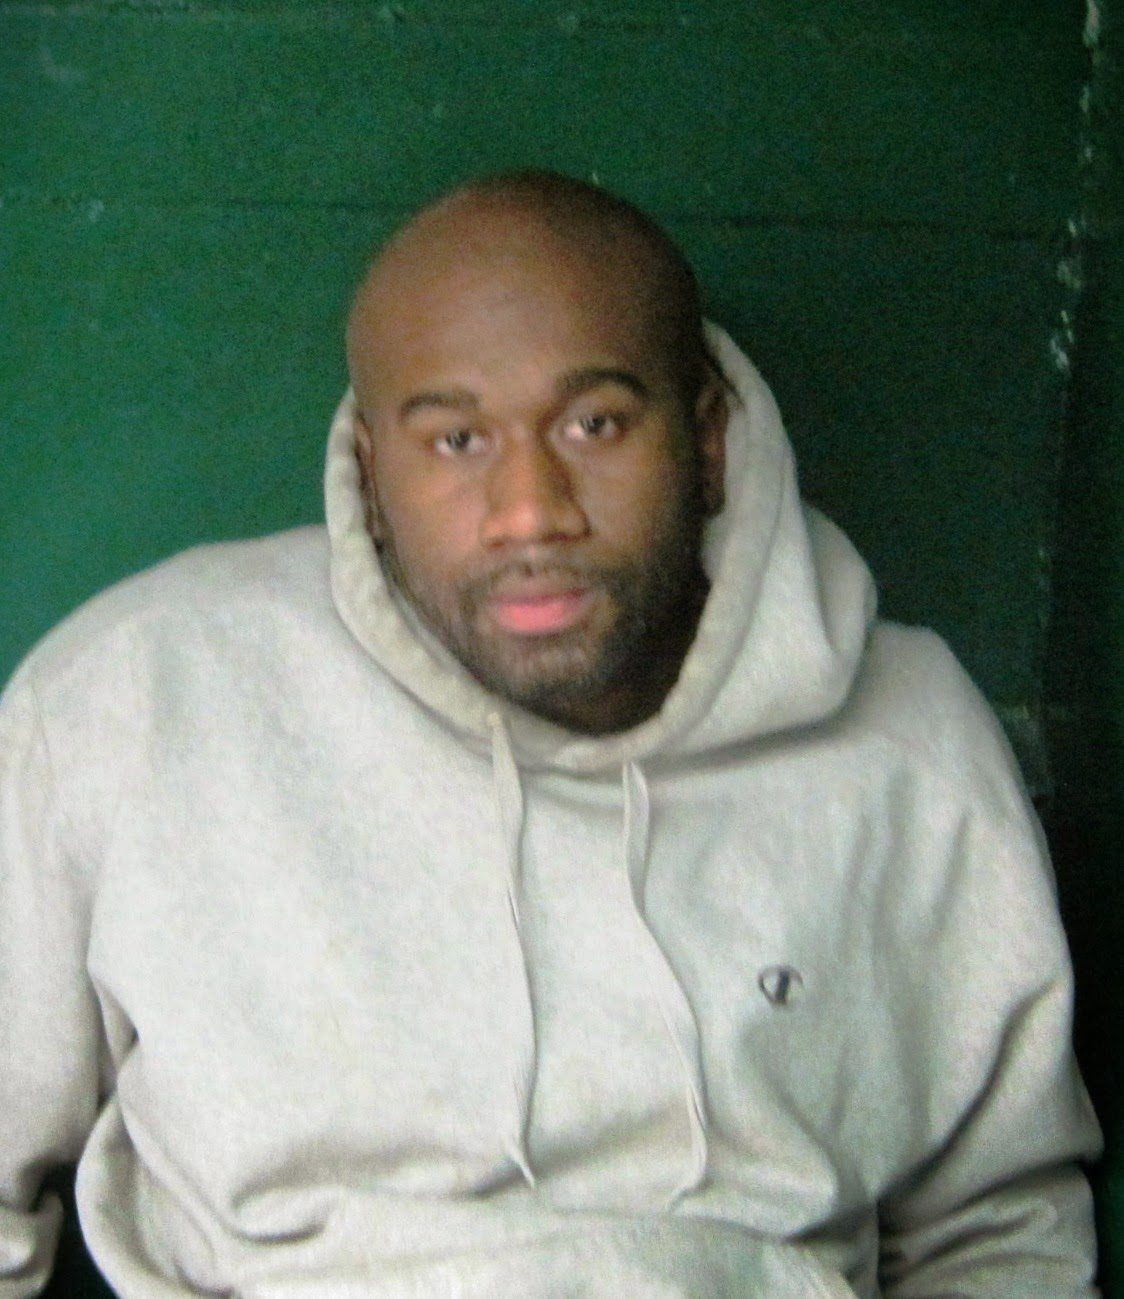 Man Sentenced In Drug Deal That Ended With Shooting